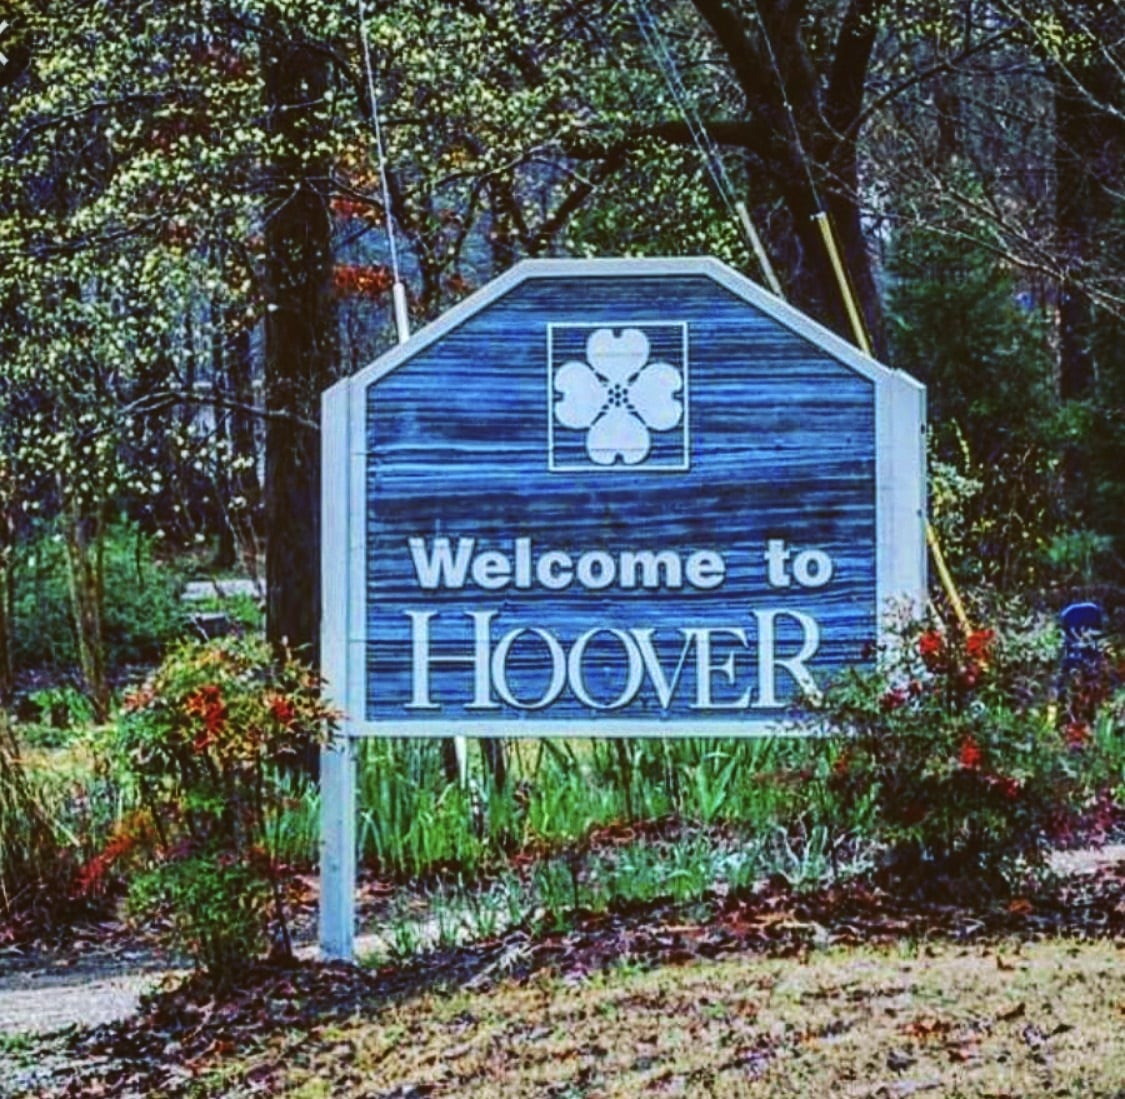 Hoover, from suburban enclave to a city with momentum: new developments in 2018